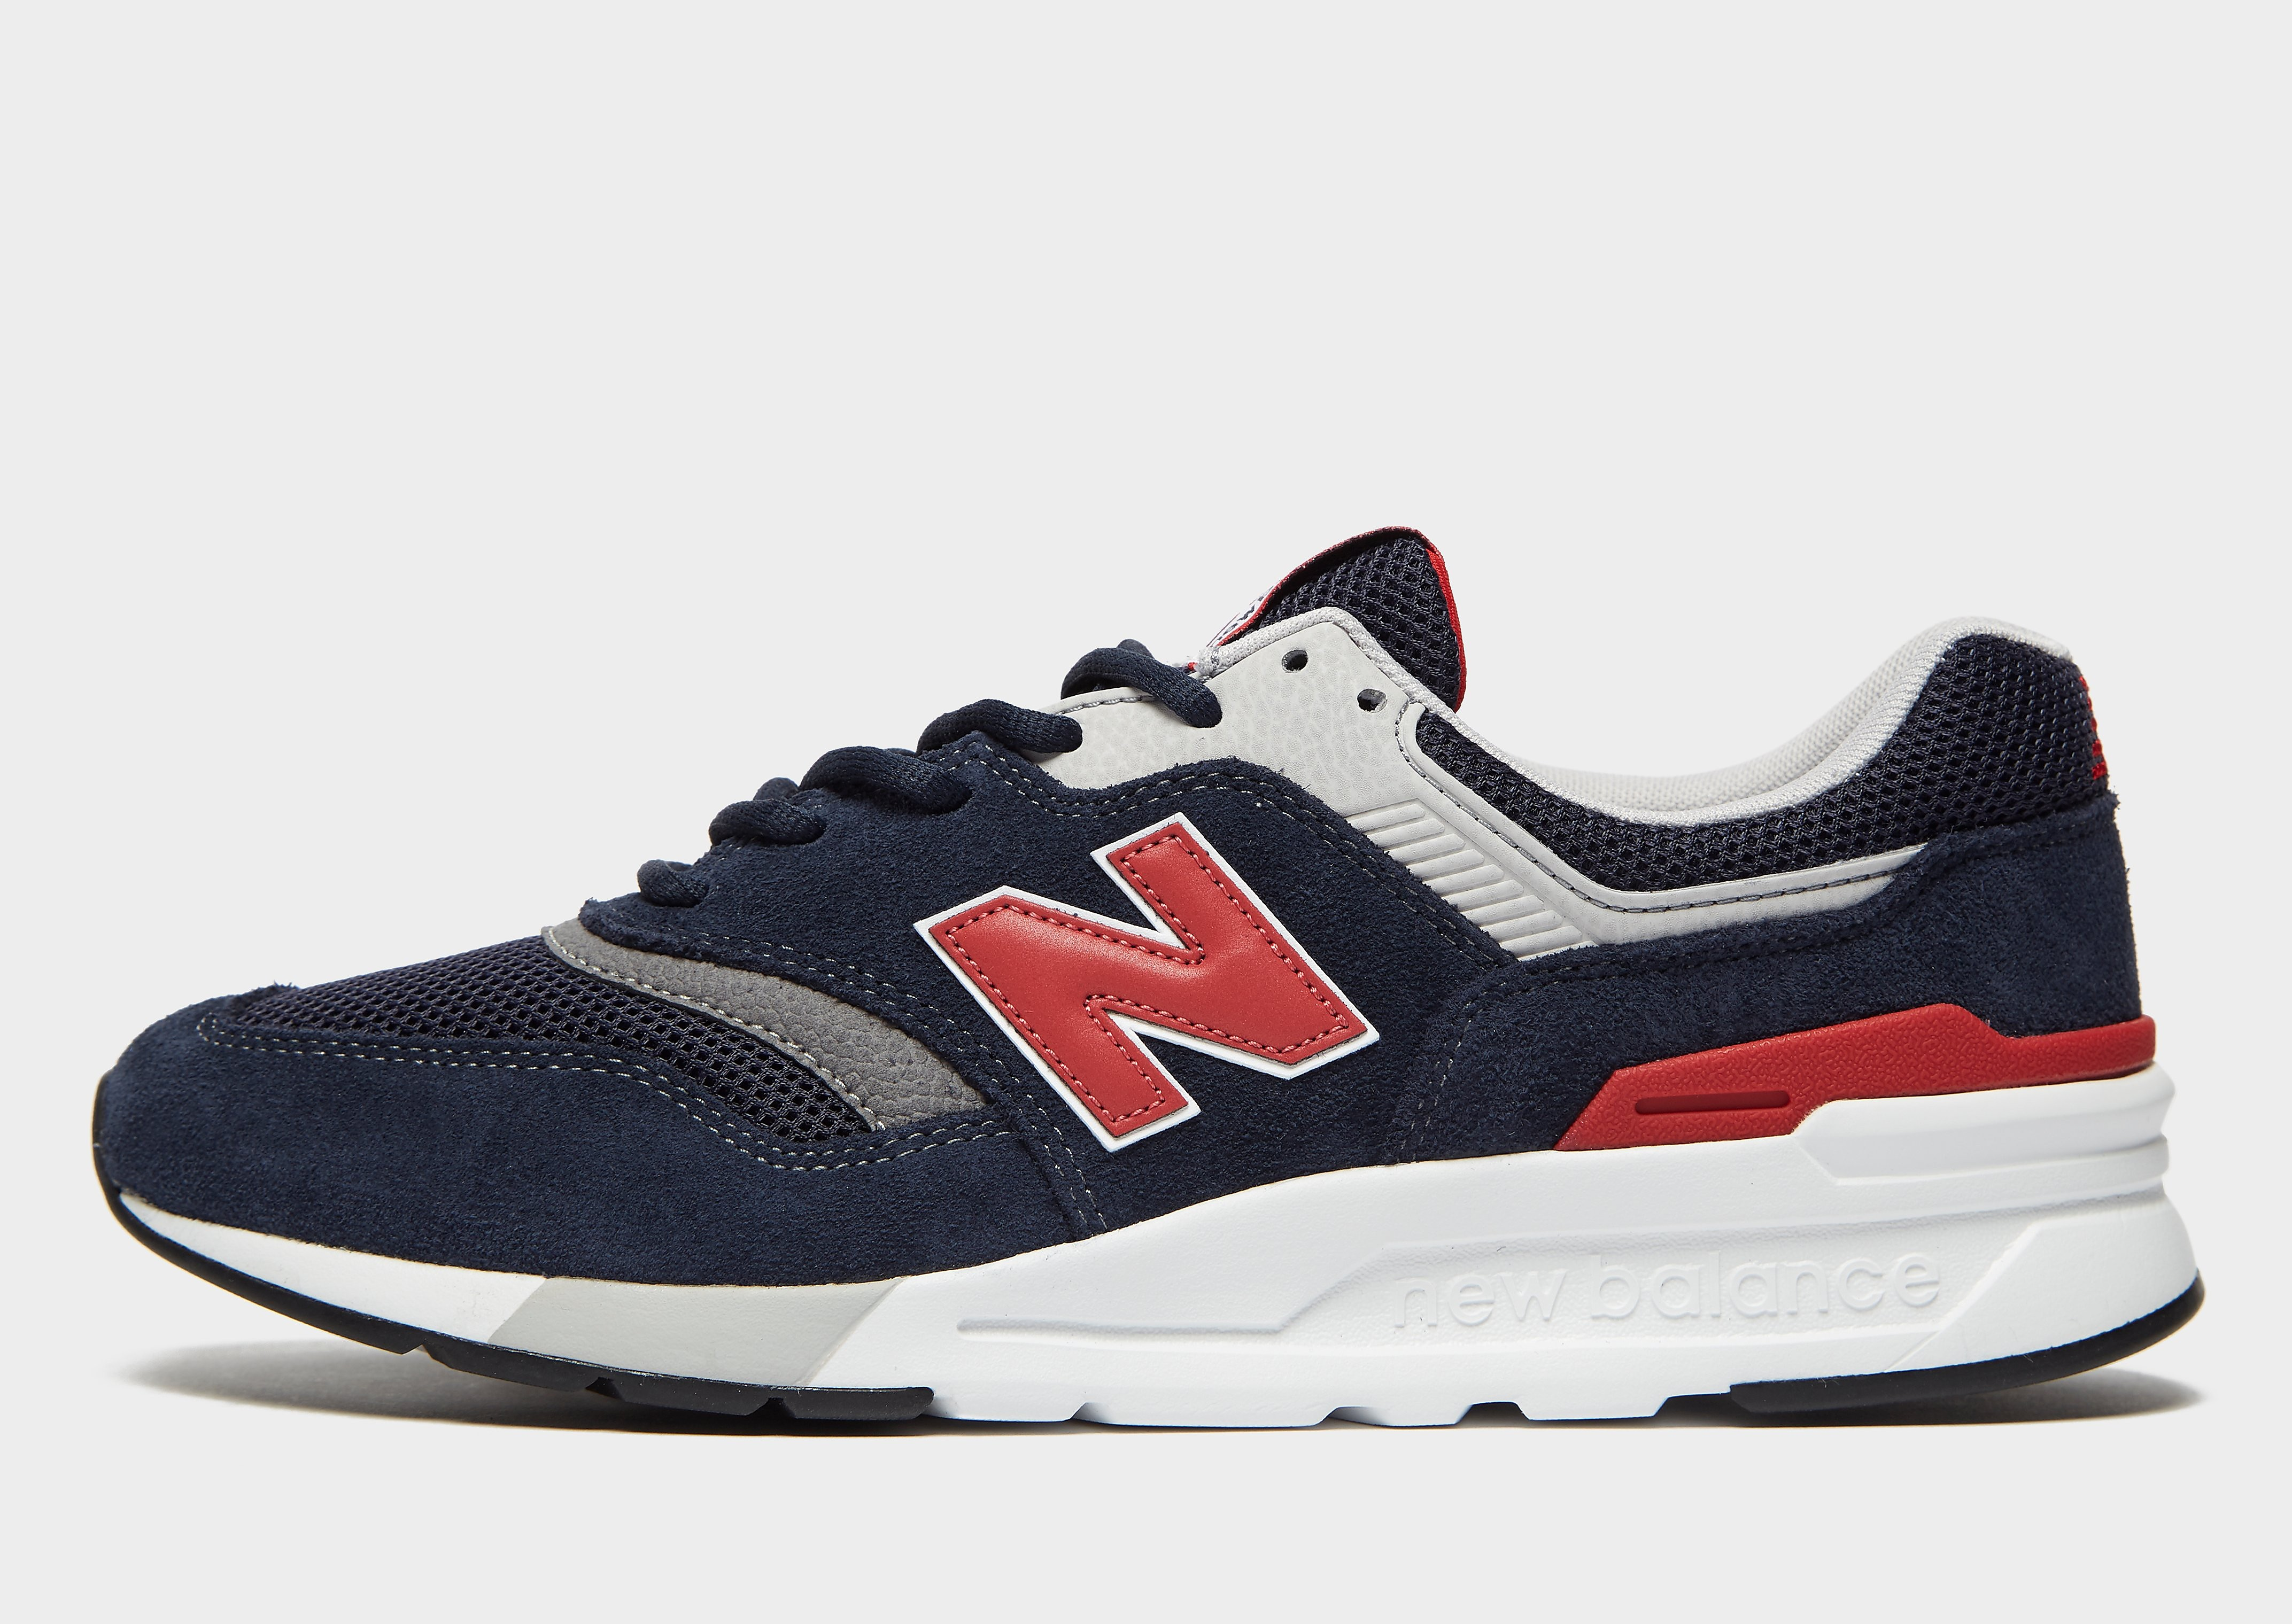 New Balance 997H Navy/Red